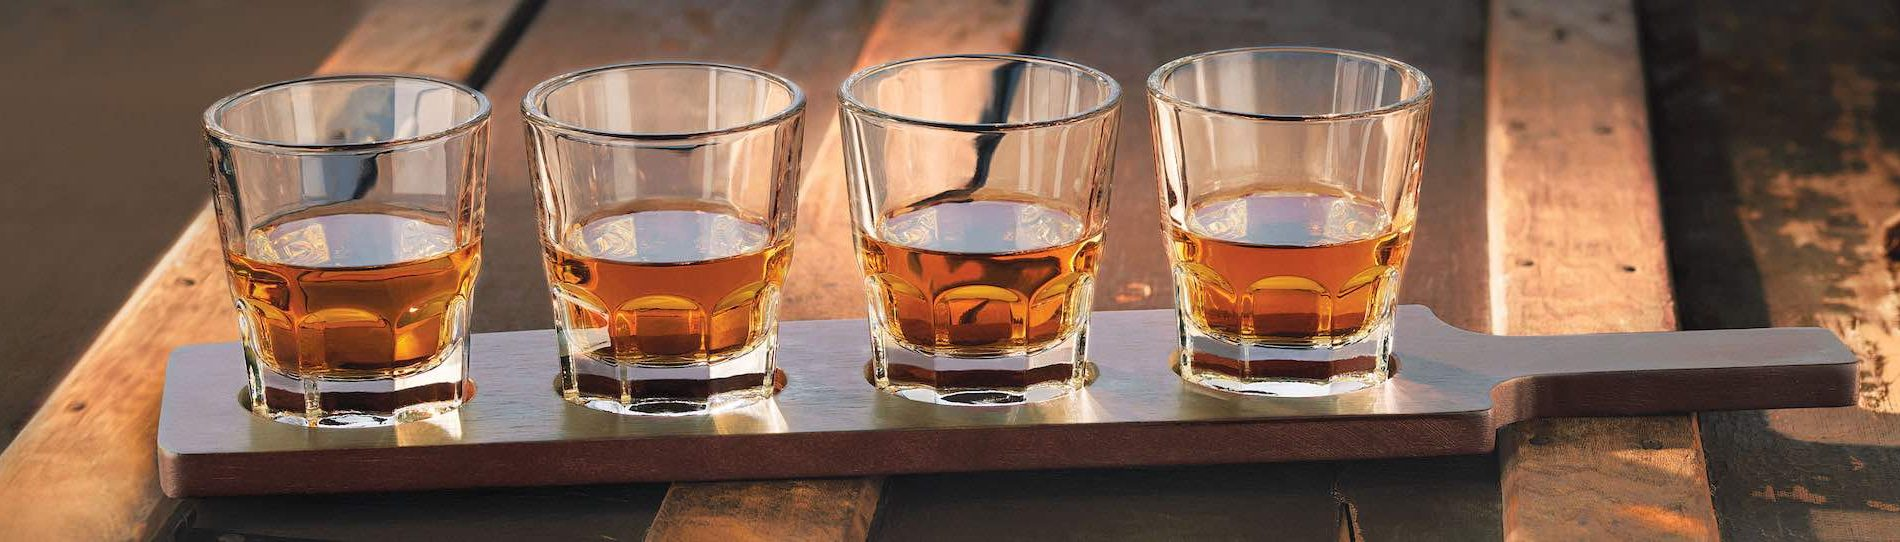 four glasses of whiskey on paddle